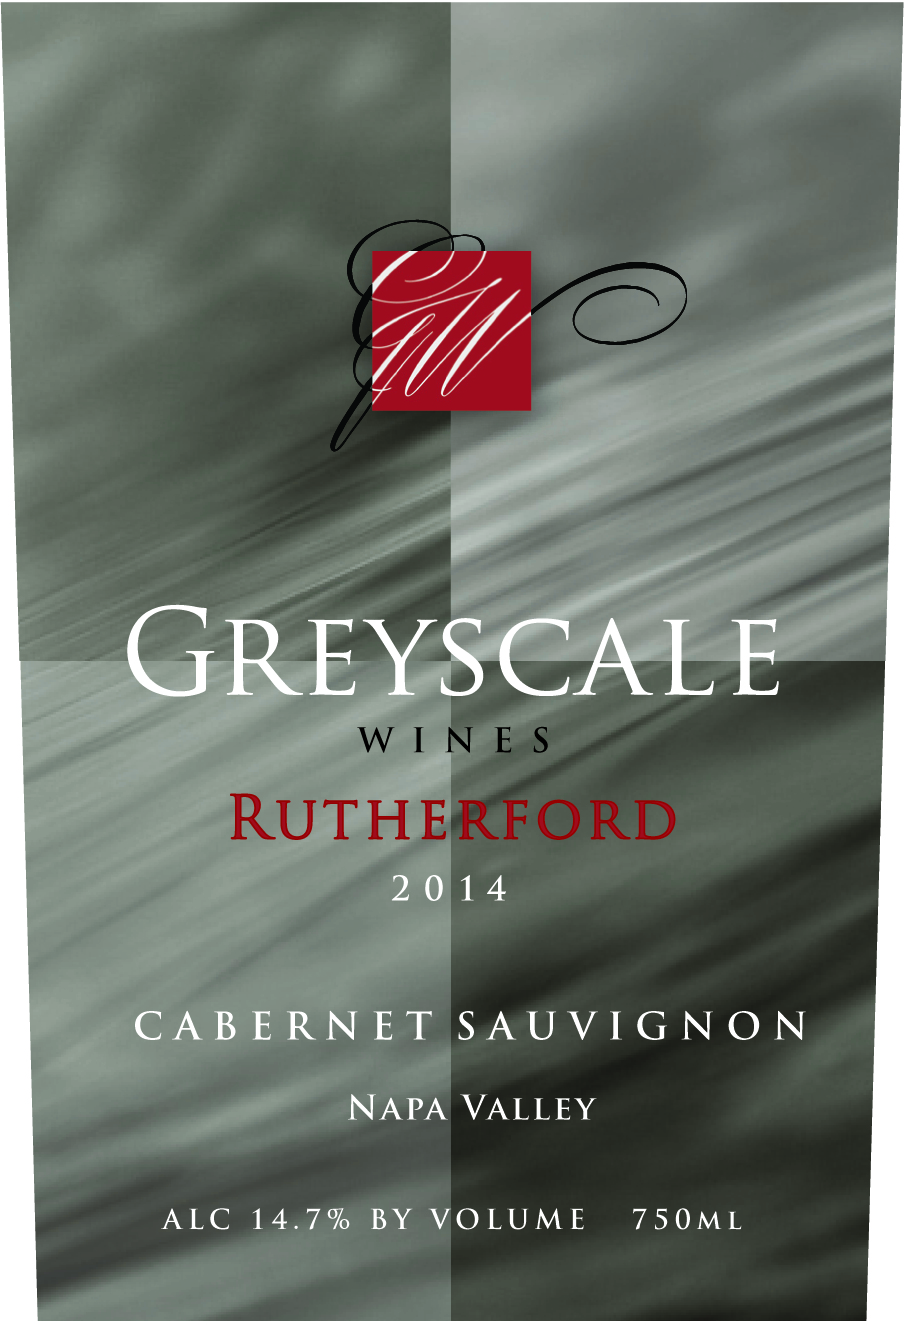 2014 Rutherford Cabernet Sauvignon - Library_THUMBNAIL